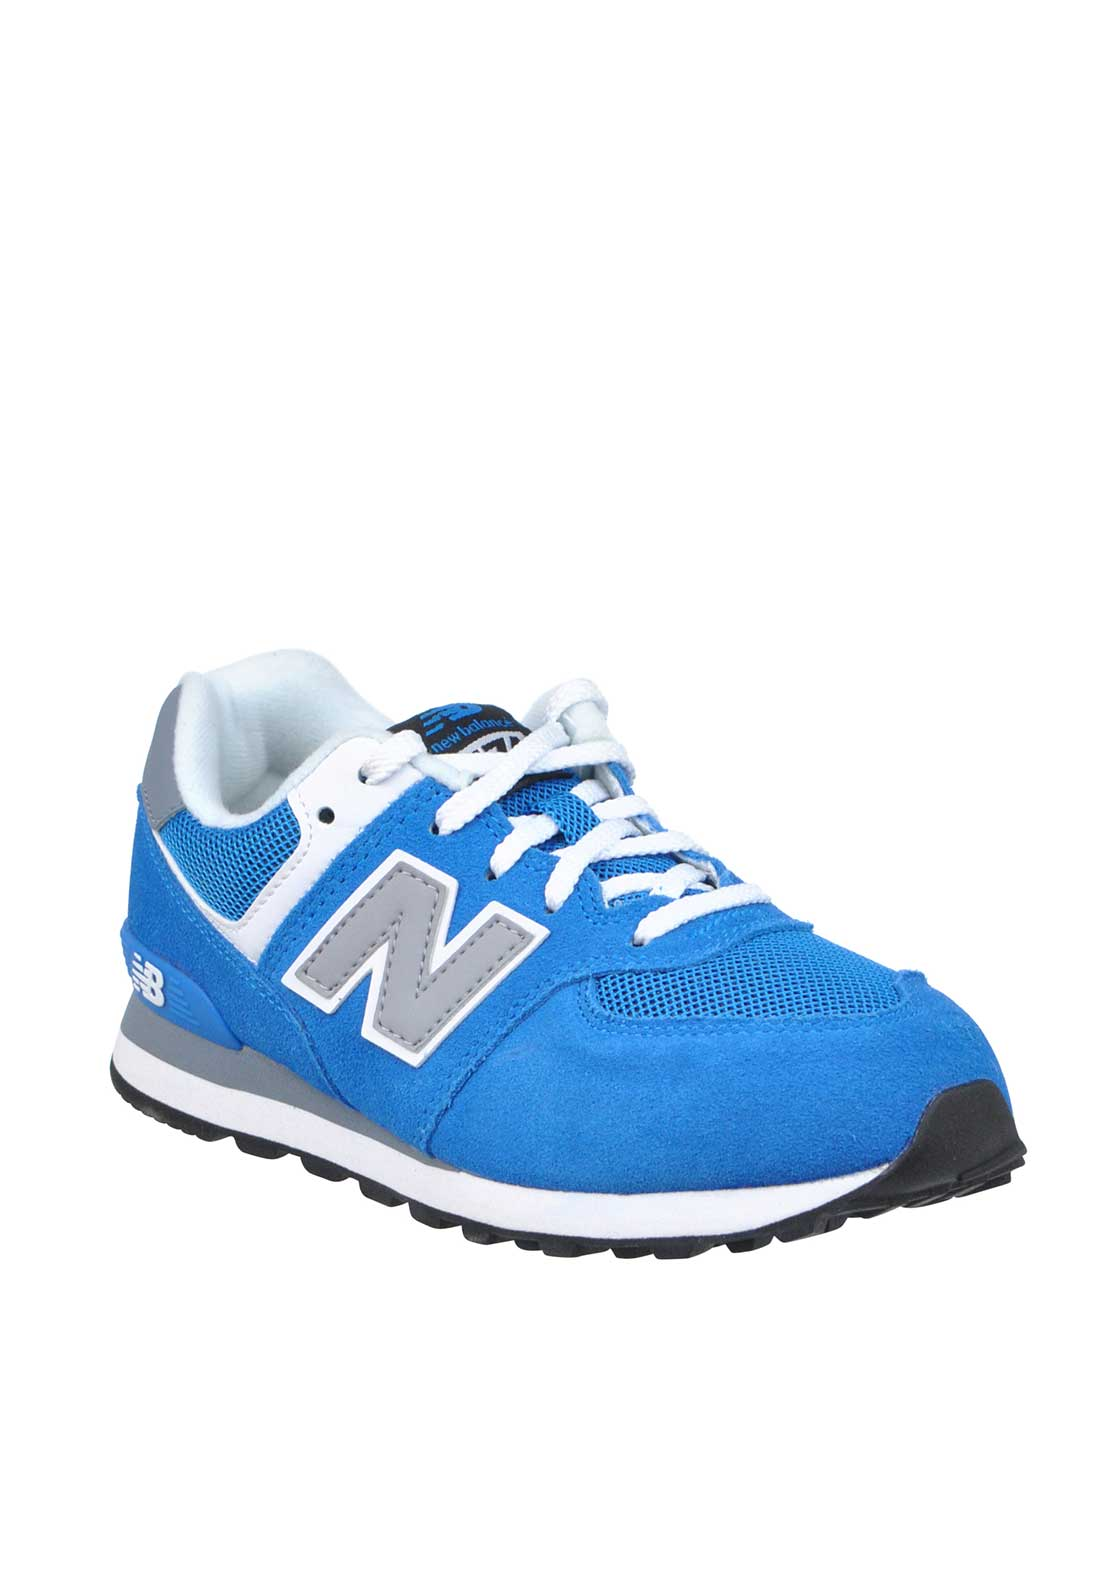 New Balance Kids 574 Fashion Runners, Blue